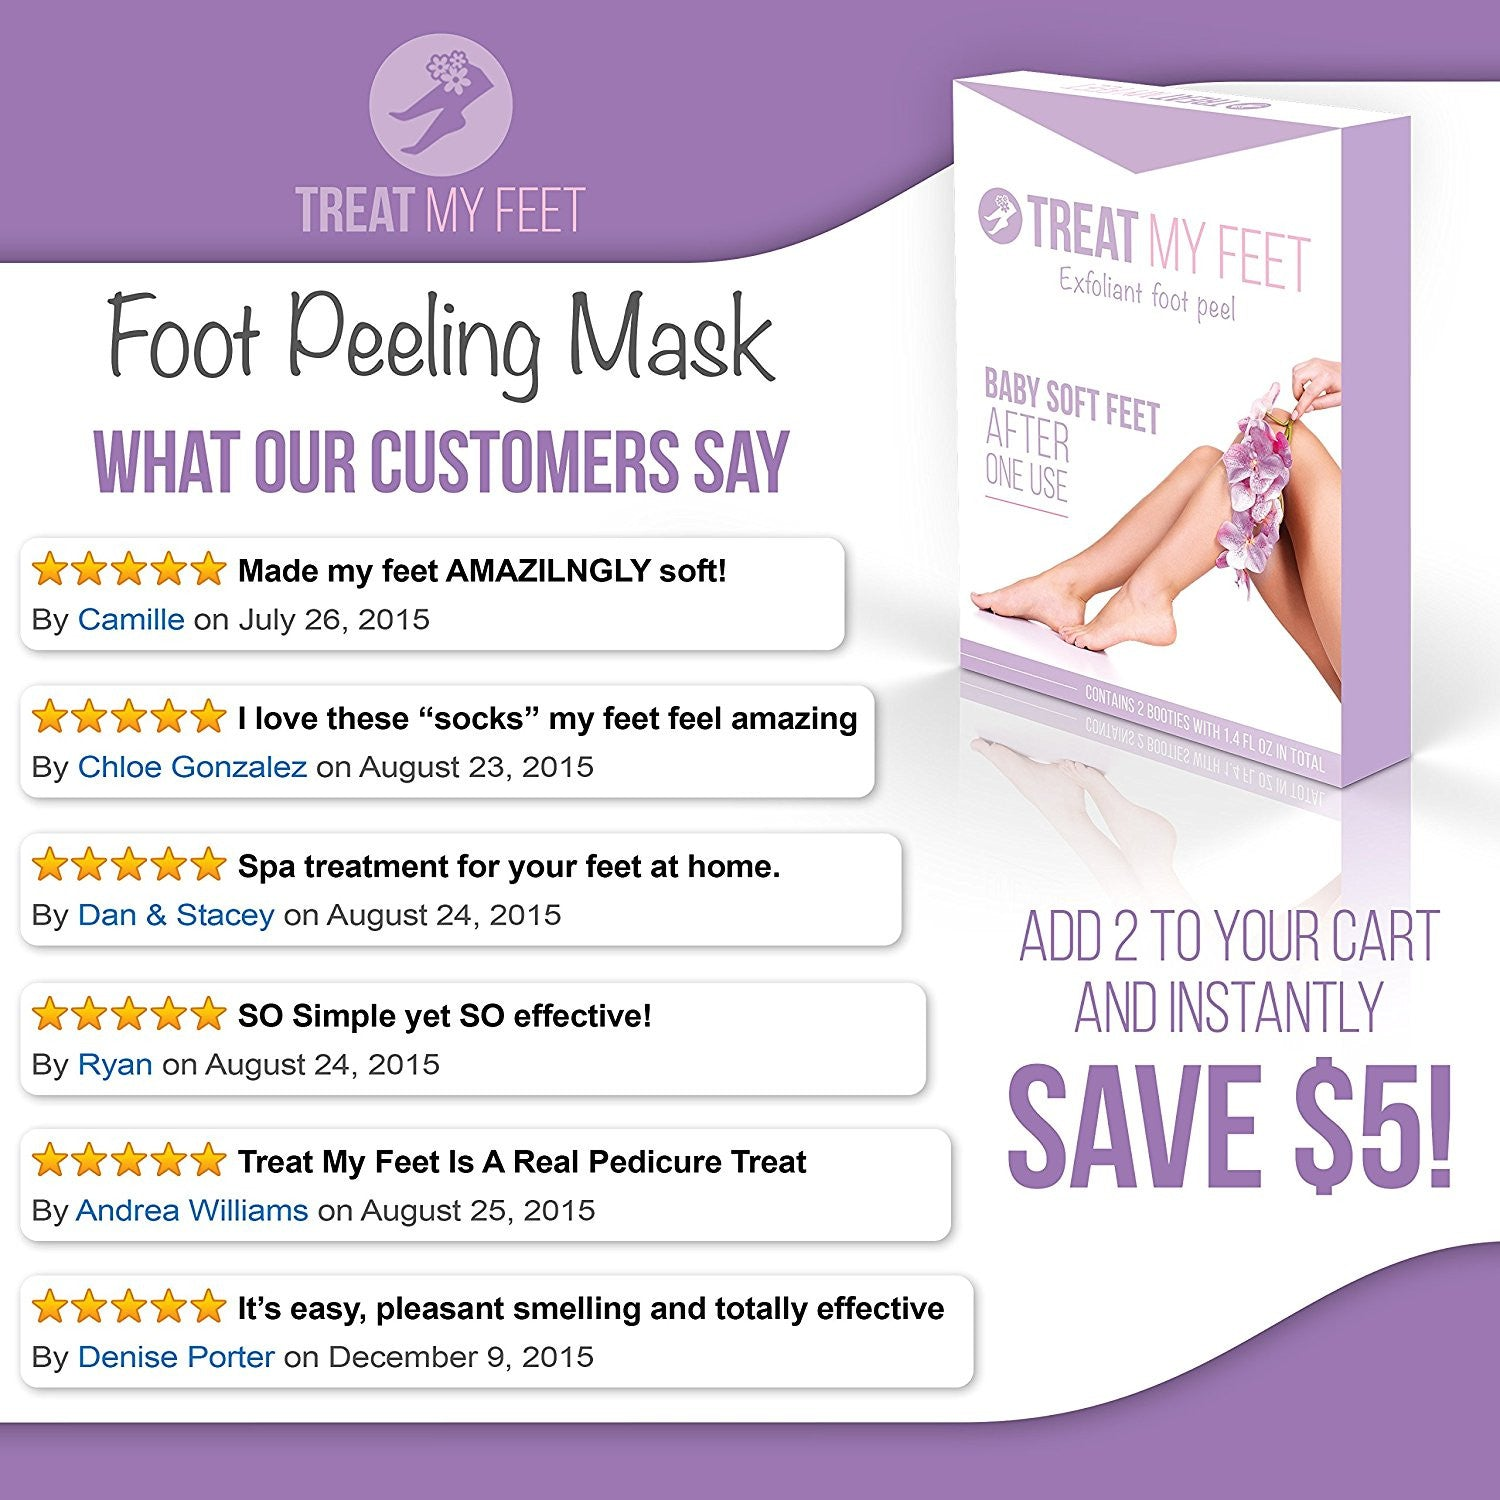 Treat My Feet Exfoliating Foot Peel and Mask